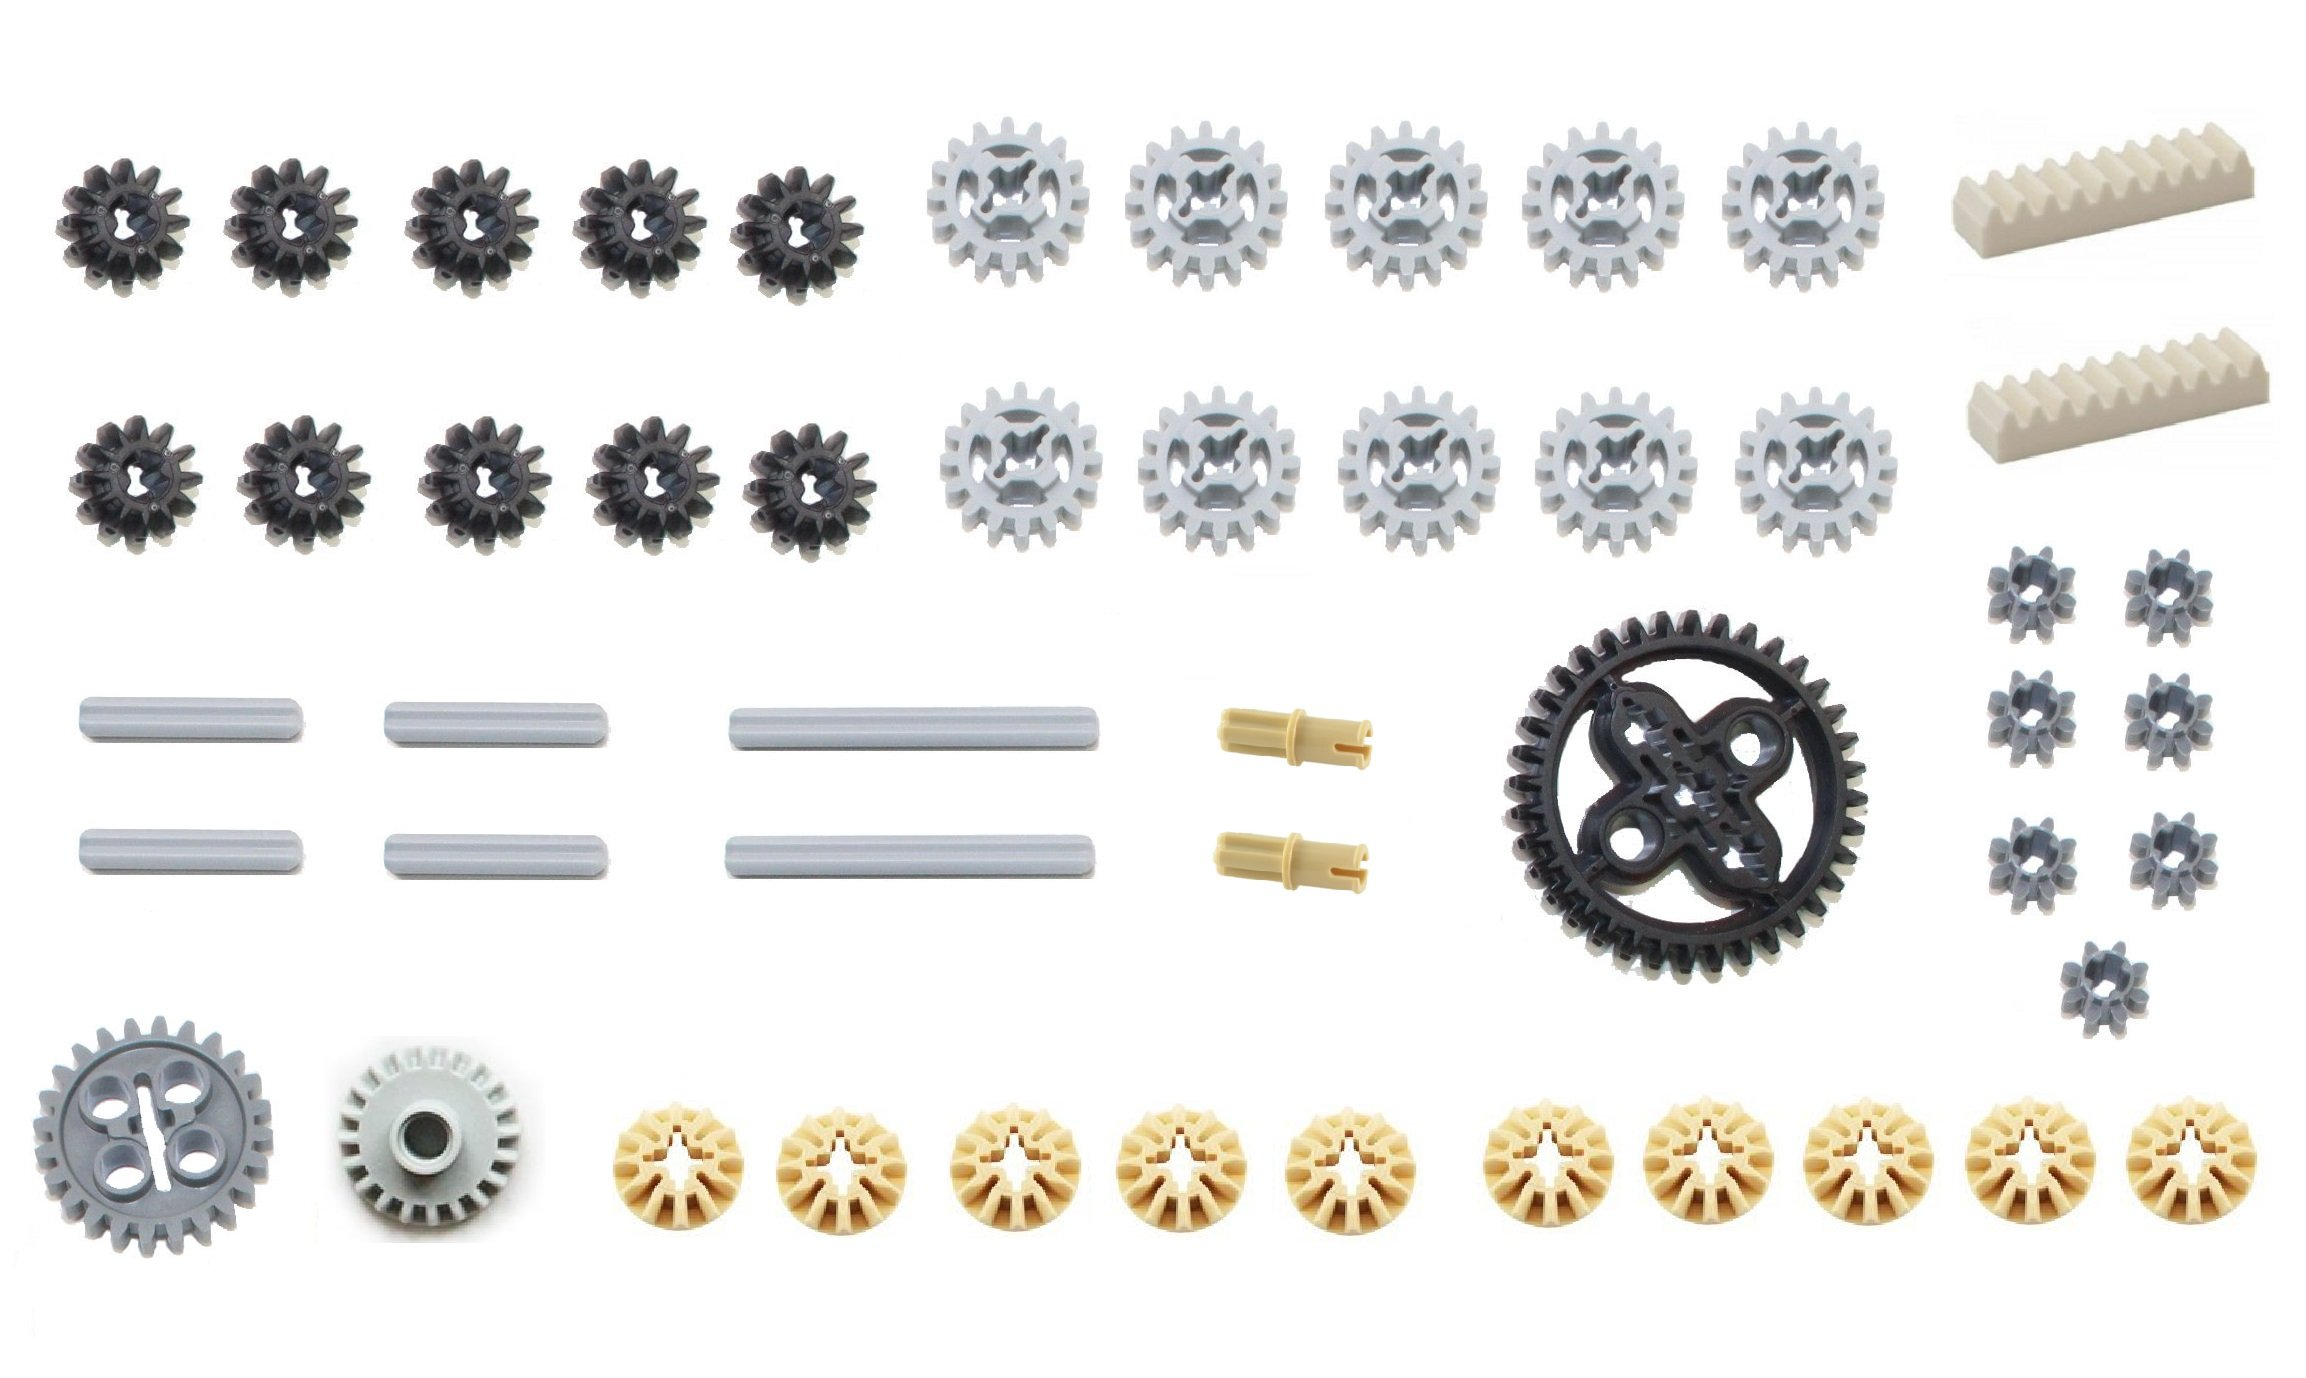 LEGO 50pc Technic gear & axle SET #2